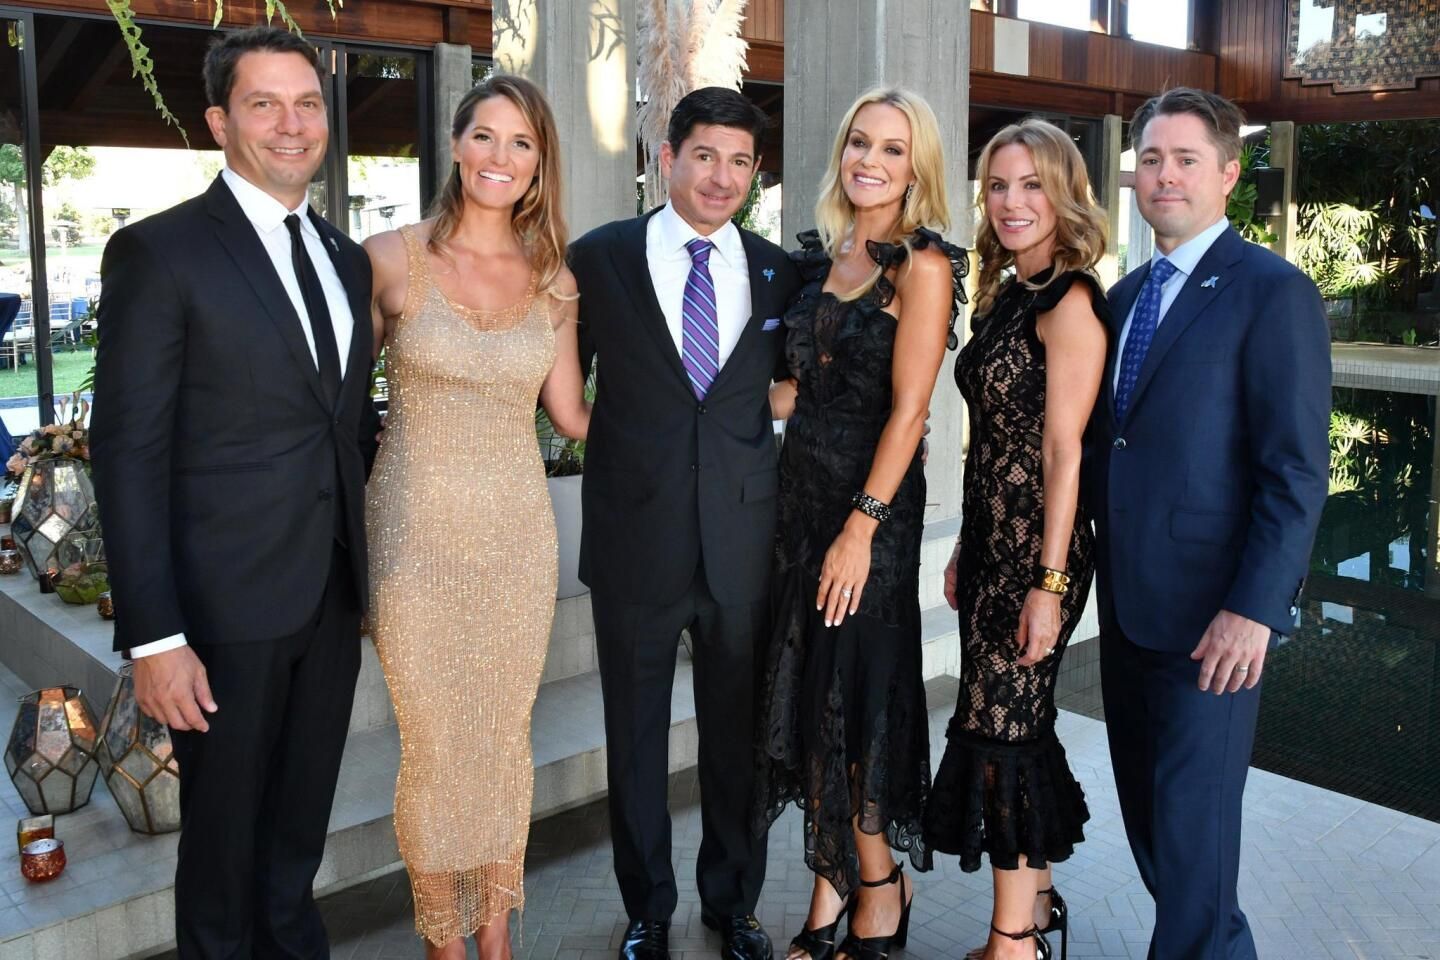 Starry Starry Night raises $1.5 million in support of Voices for Children